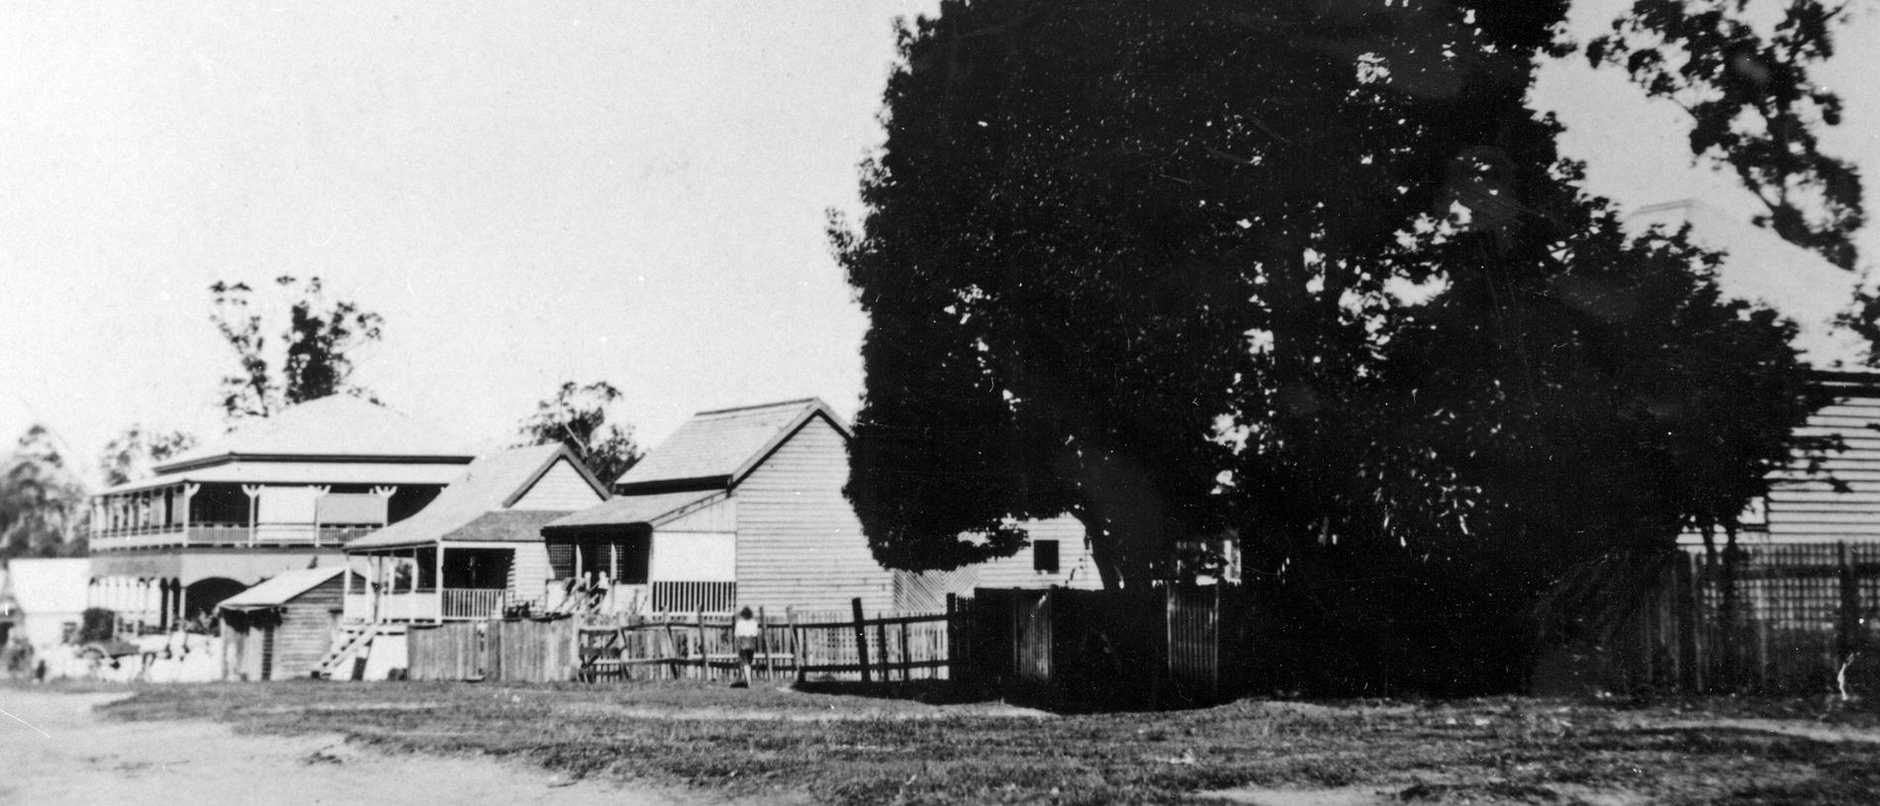 Hotel and adjacent houses in Simpson Street, Beerwah, ca 1918. The view from the sawmill office (present Mill Park site) showing Simpson's two-storey Beerwah Hotel and houses rented by sawmill workers.